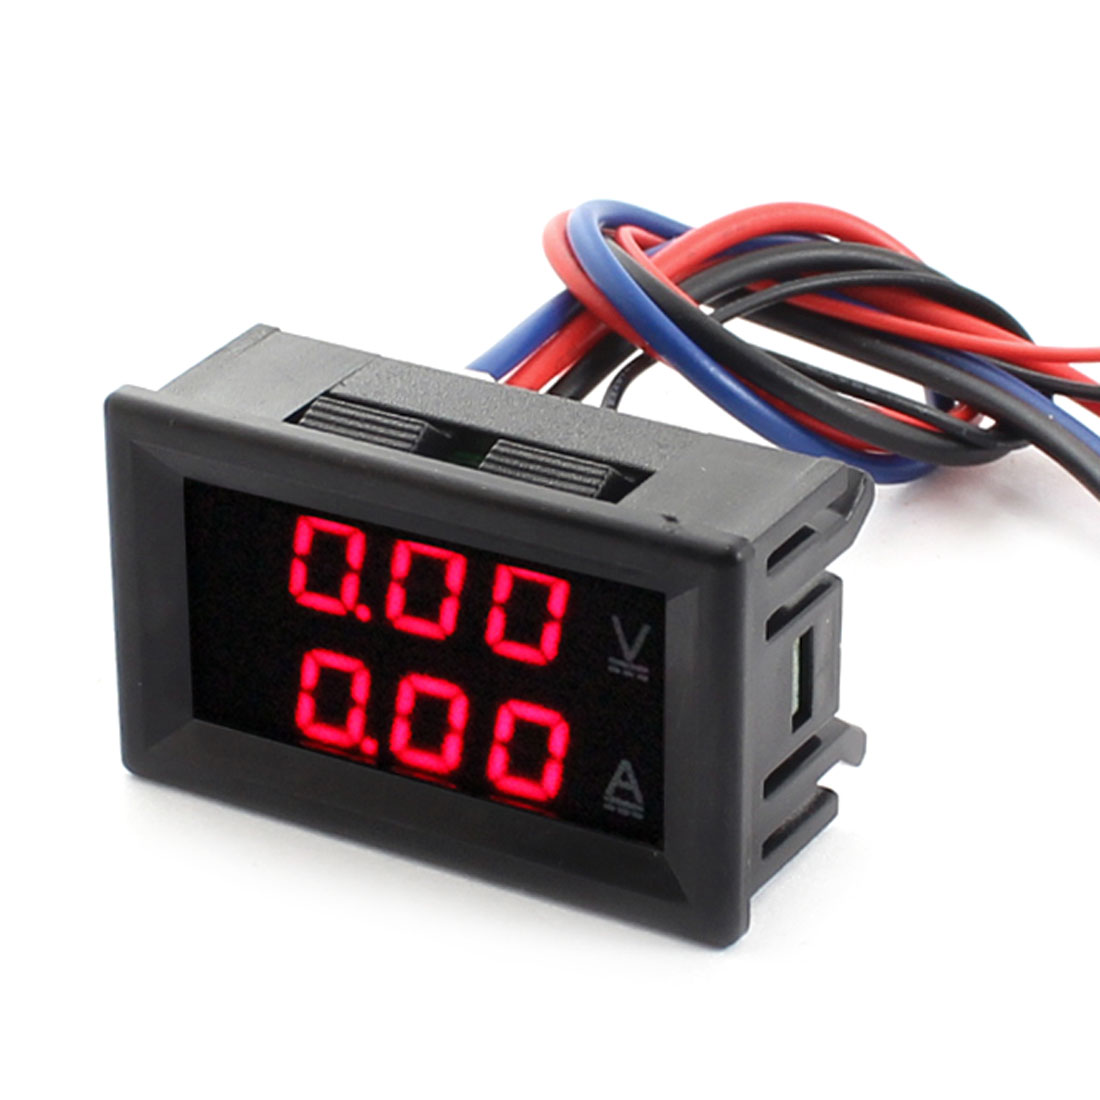 DC 0-100V 0-10A Red Dual LED Digital Volt Voltmeter Ammeter Ampere Gauge